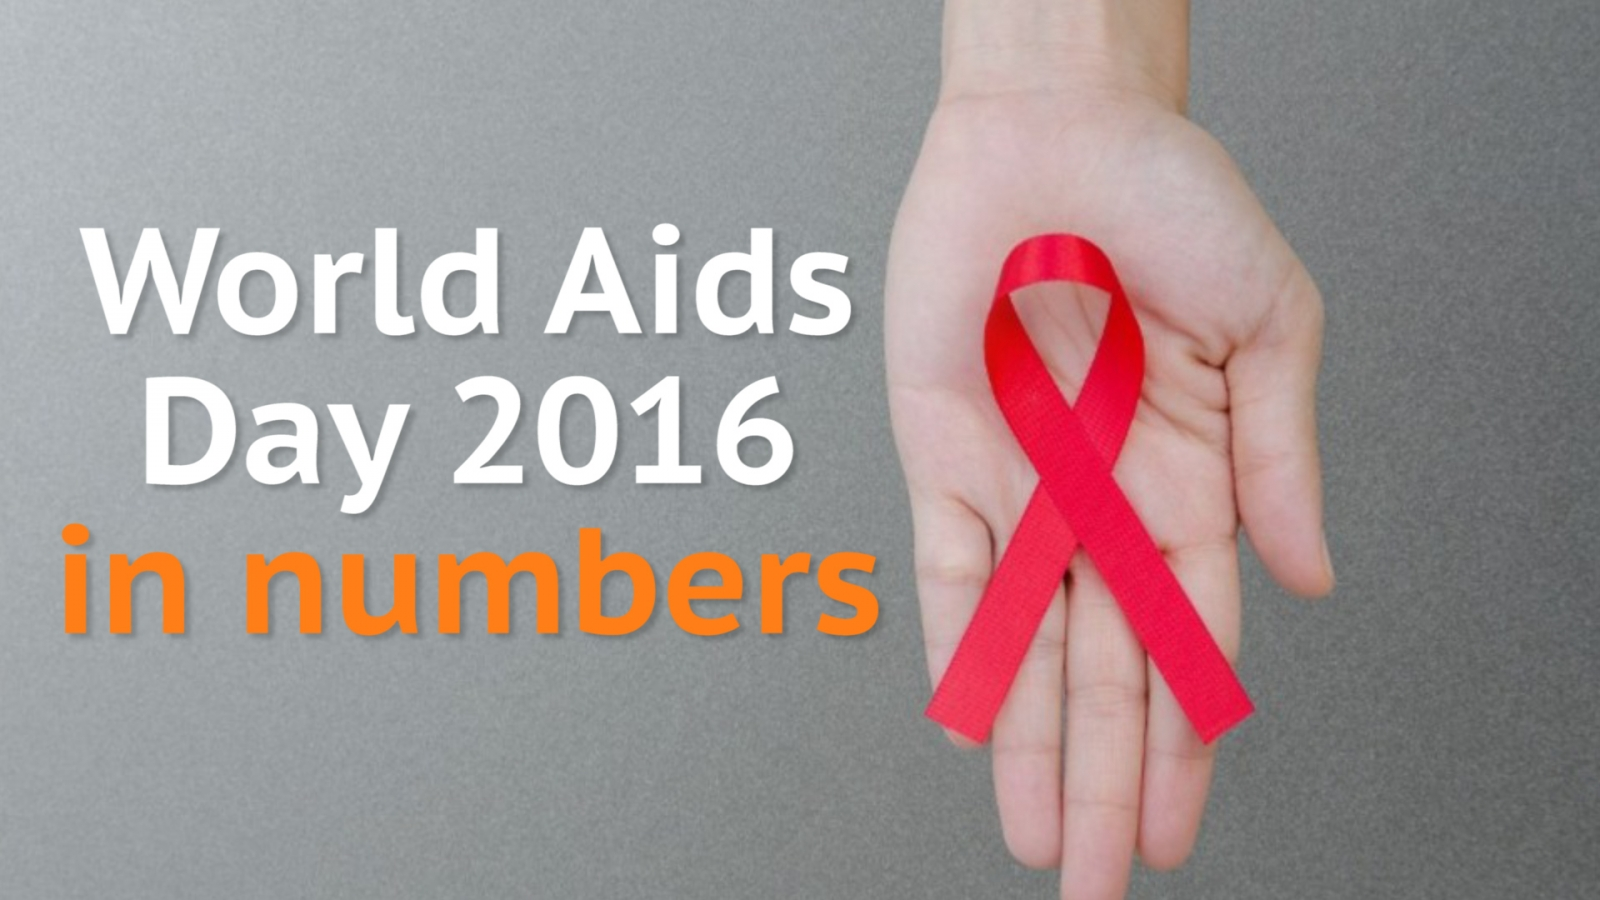 World Aids Day 2016: HIV in numbers